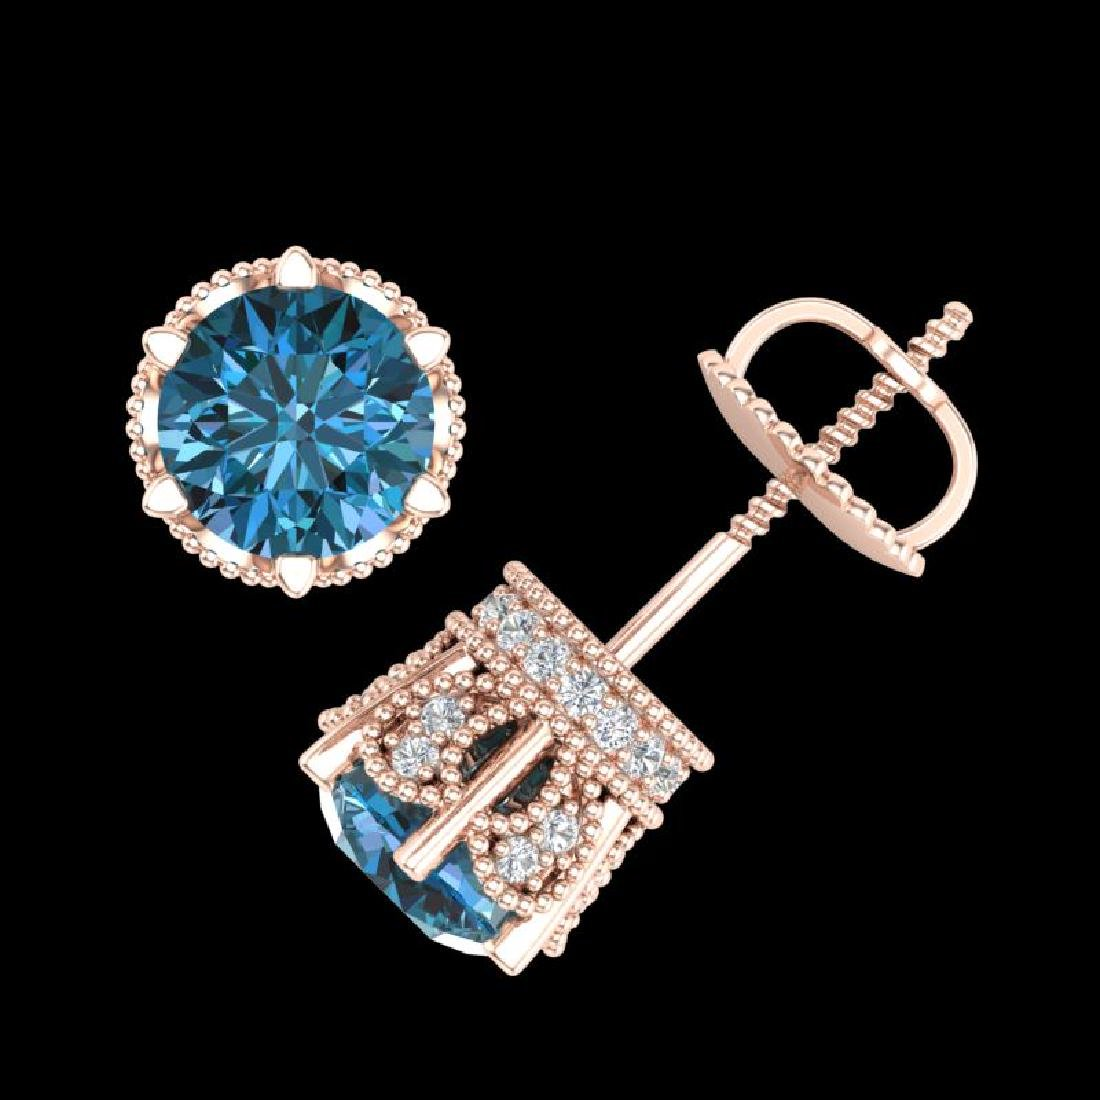 2.04 CTW Fancy Intense Blue Diamond Art Deco Stud - 3